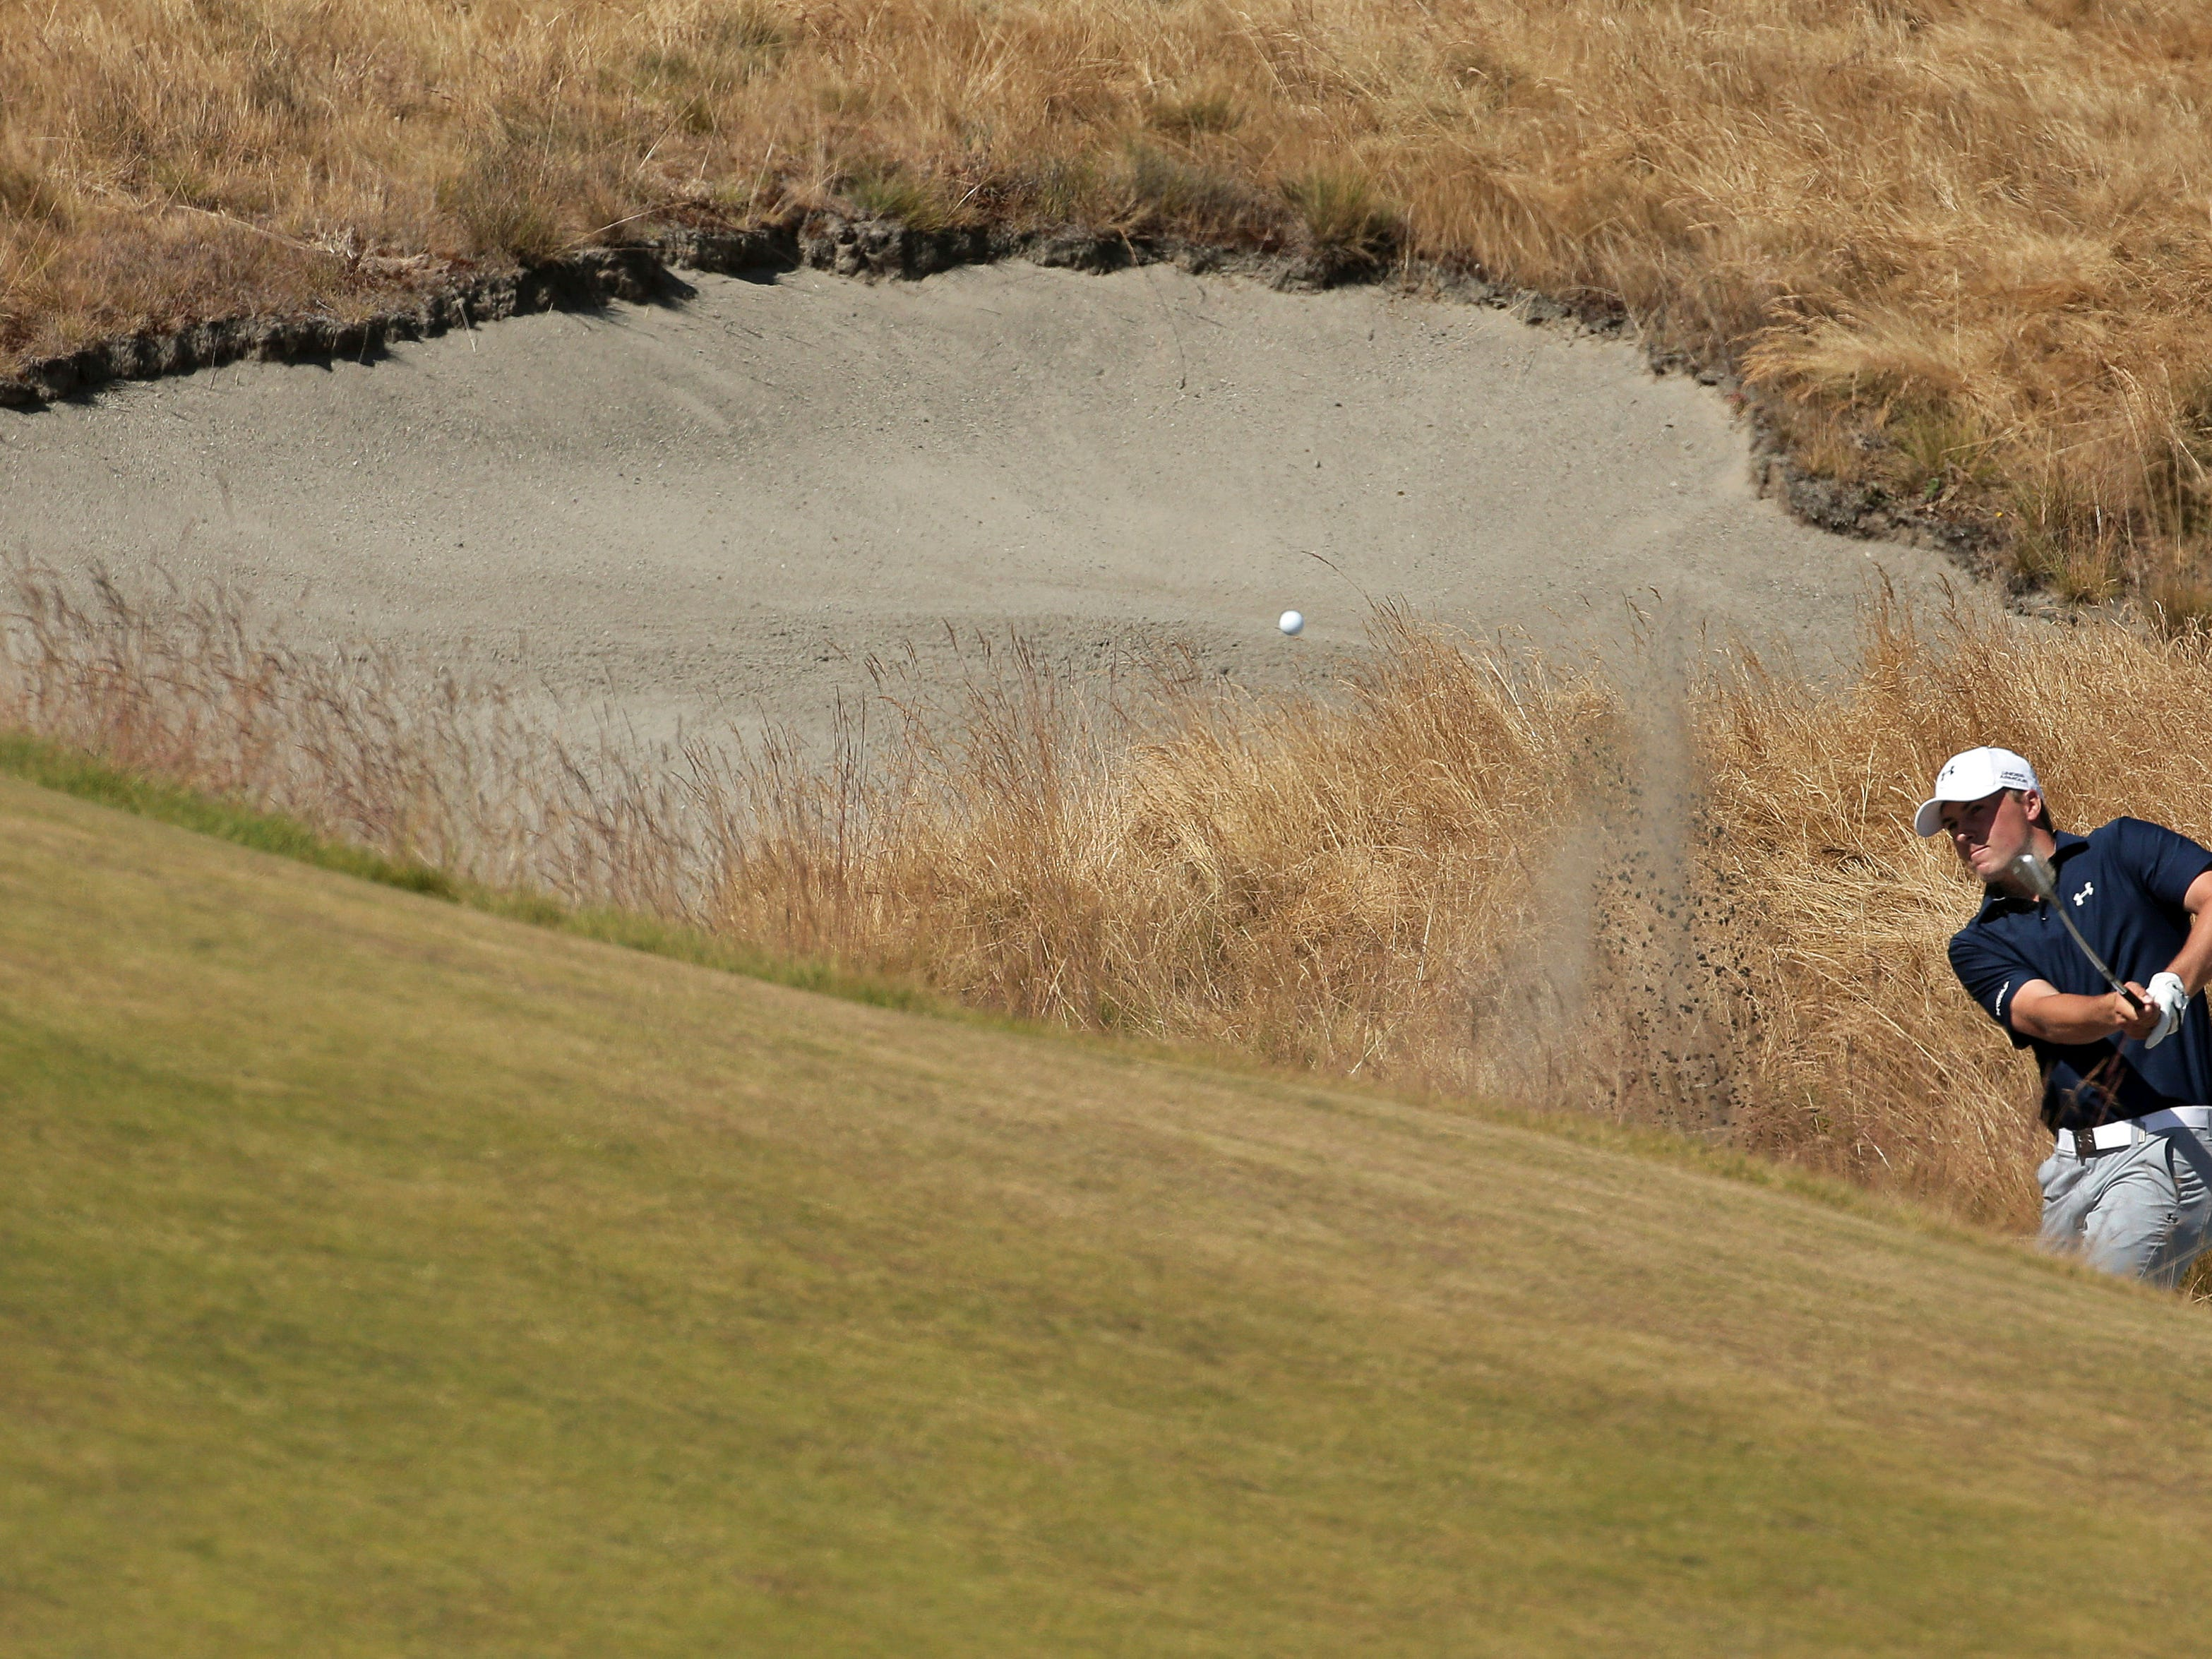 Jordan Spieth hits out of the bunker on the 18th hole during the second round of the U.S. Open golf tournament at Chambers Bay on Friday, June 19, 2015 in University Place, Wash. (AP Photo/Charlie Riedel)